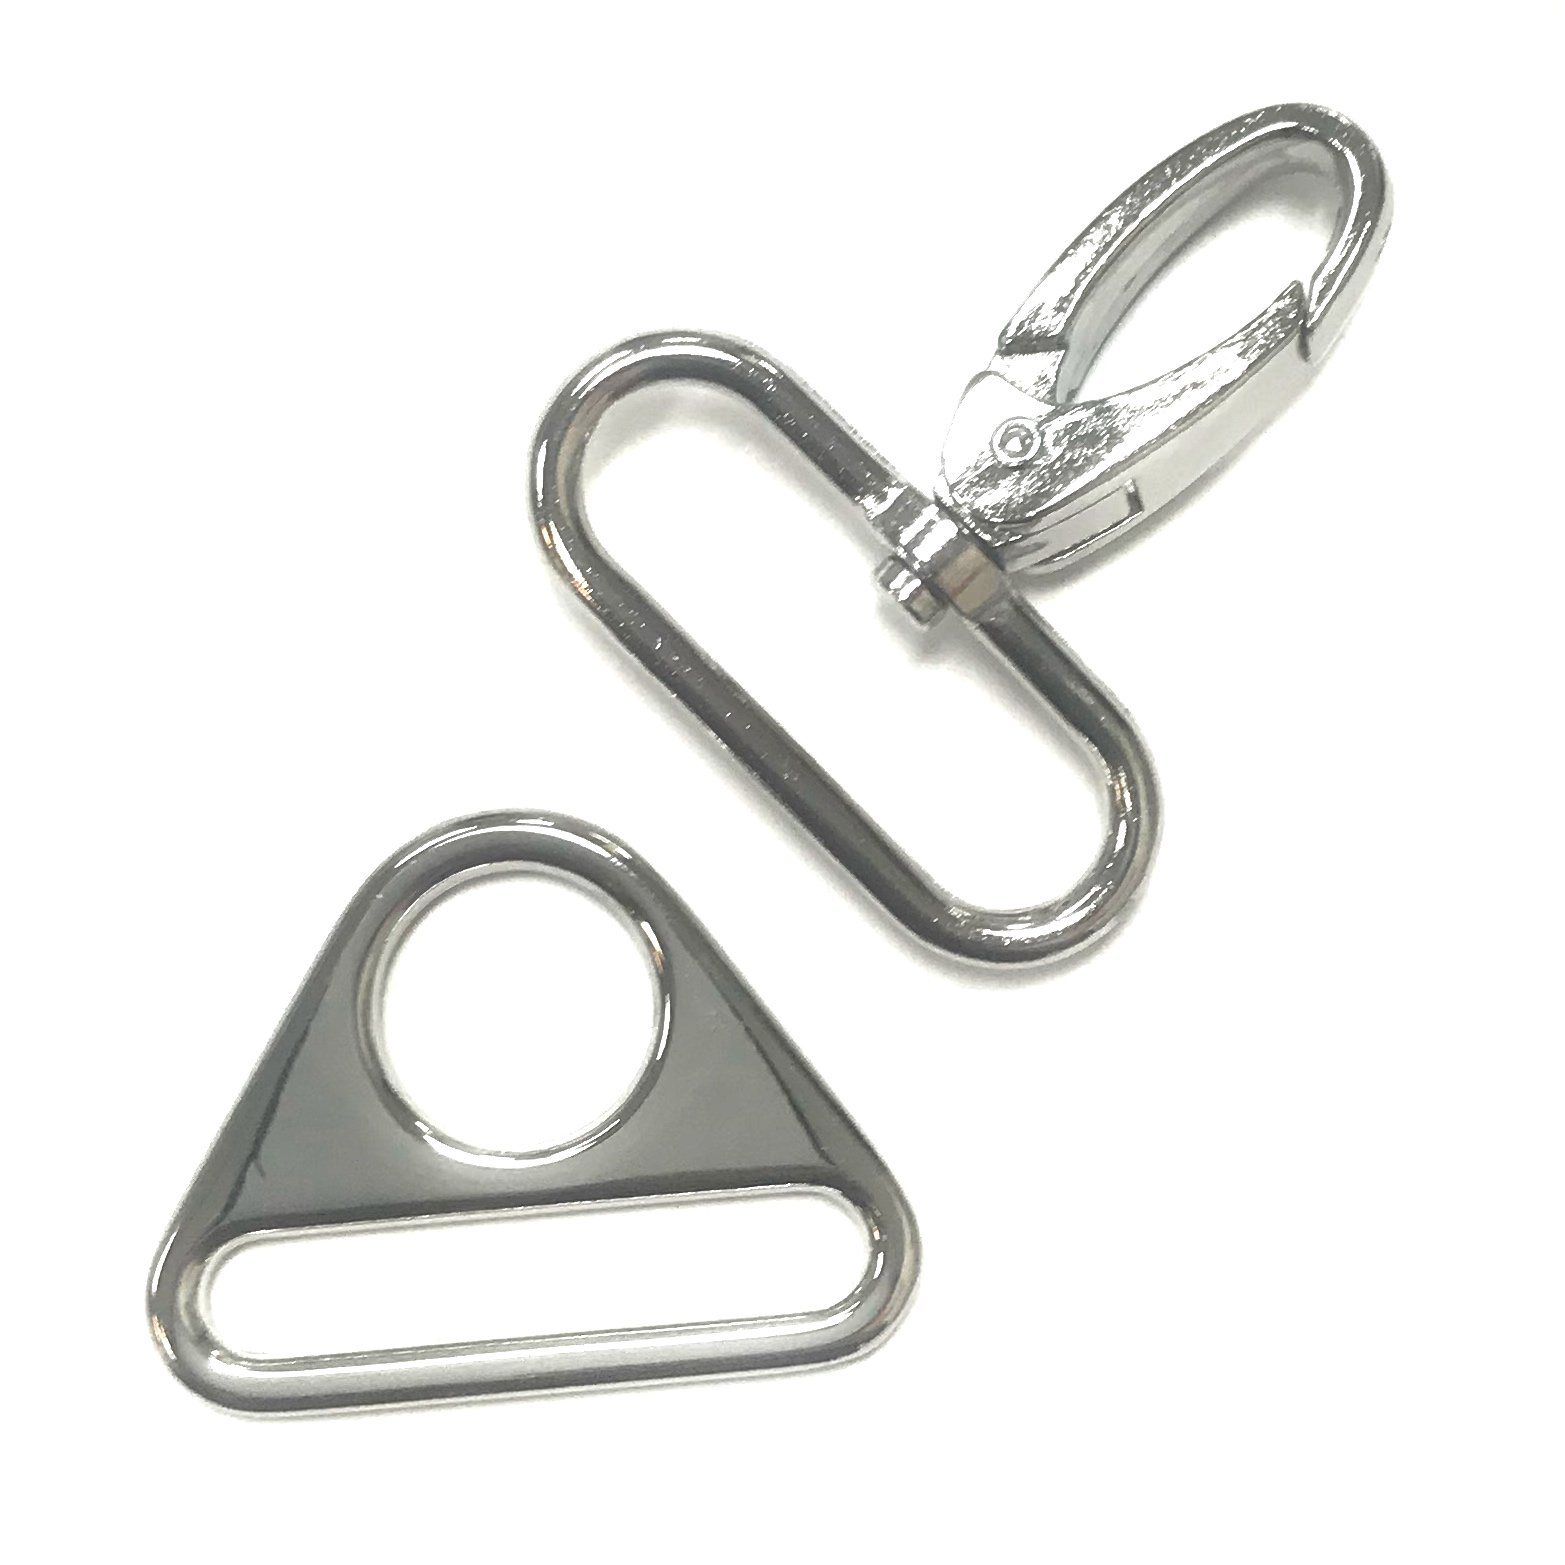 Lobster Claw Swivel & Triangle Ring Set - 1 1/2